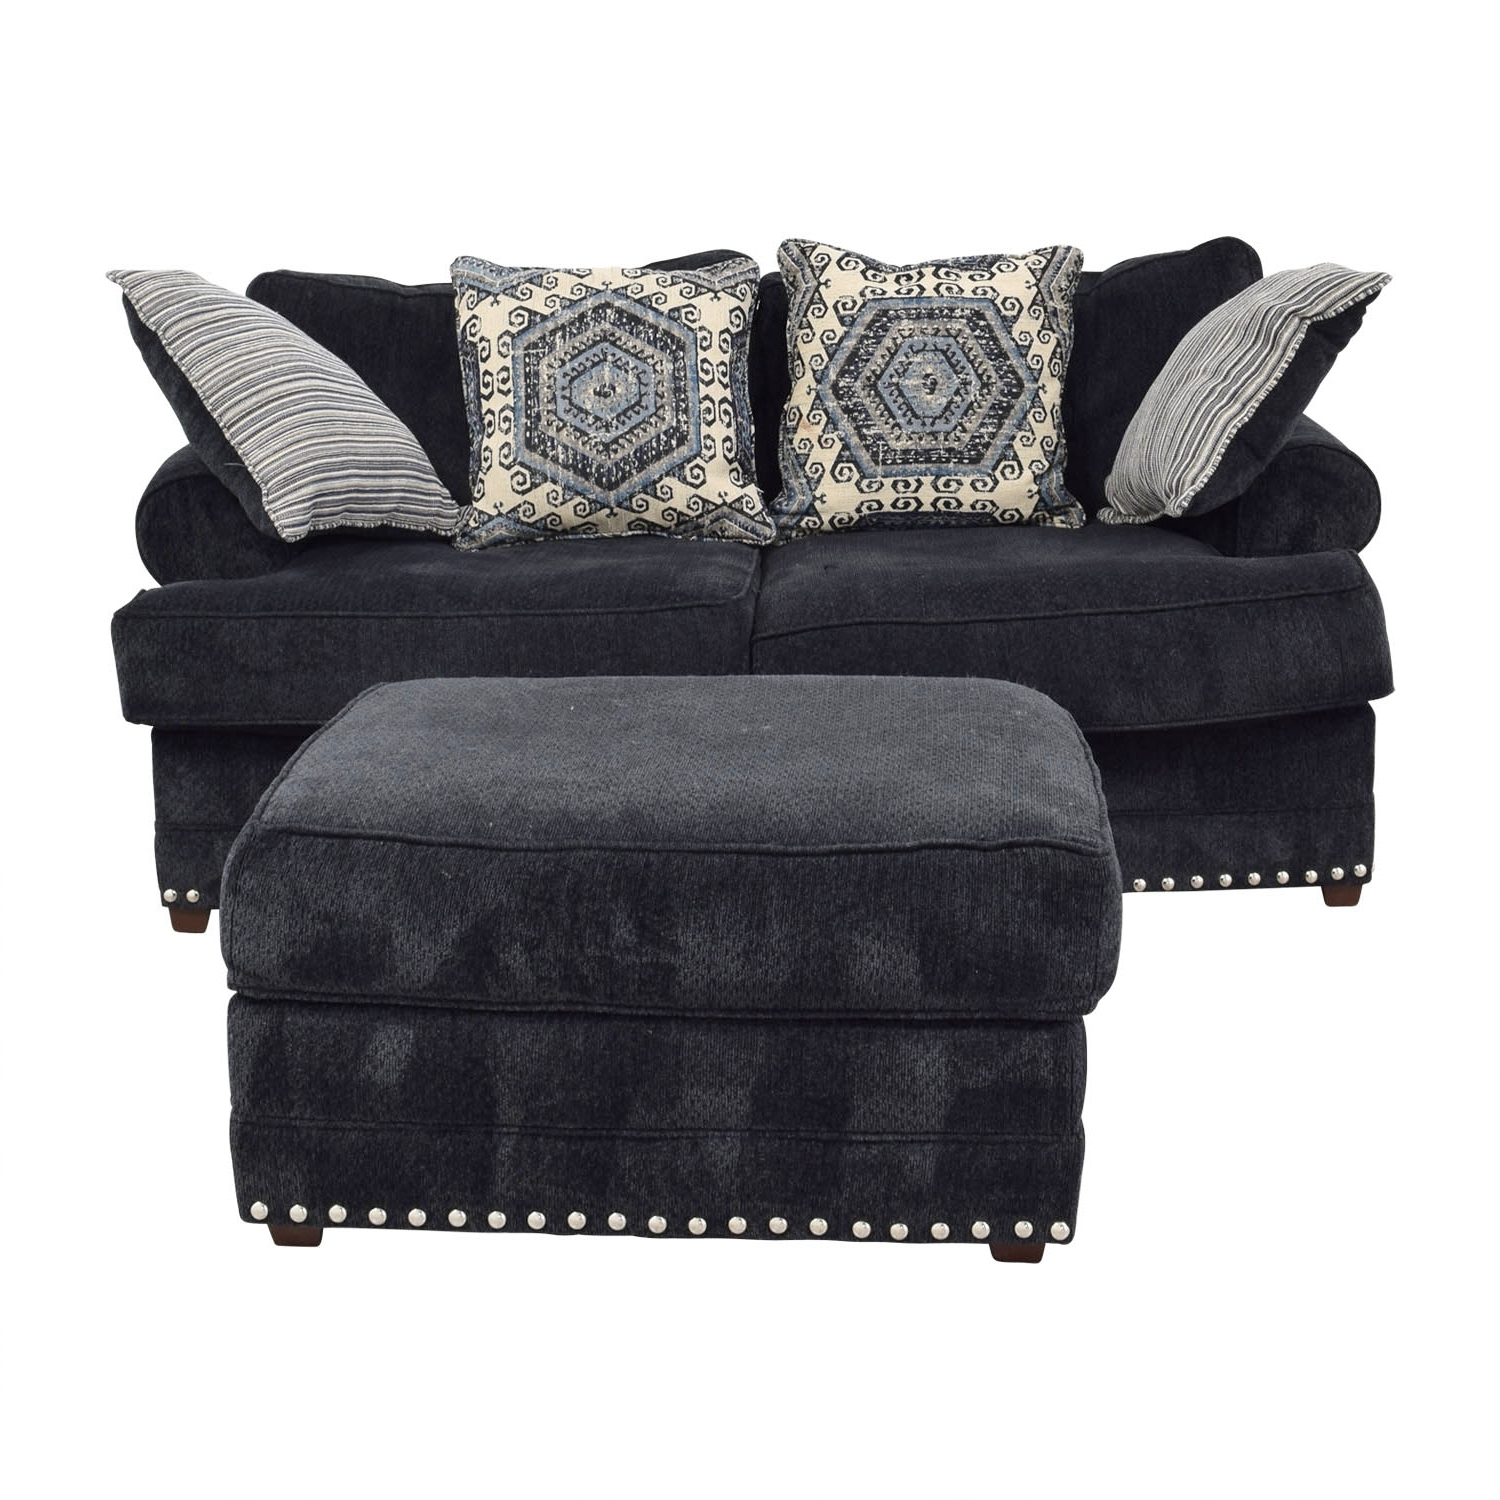 [%69% Off – Bob's Furniture Bob's Furniture Dakota Navy Nailhead Intended For Recent Loveseats With Ottoman|Loveseats With Ottoman For Best And Newest 69% Off – Bob's Furniture Bob's Furniture Dakota Navy Nailhead|Well Known Loveseats With Ottoman Pertaining To 69% Off – Bob's Furniture Bob's Furniture Dakota Navy Nailhead|Recent 69% Off – Bob's Furniture Bob's Furniture Dakota Navy Nailhead Throughout Loveseats With Ottoman%] (View 17 of 20)